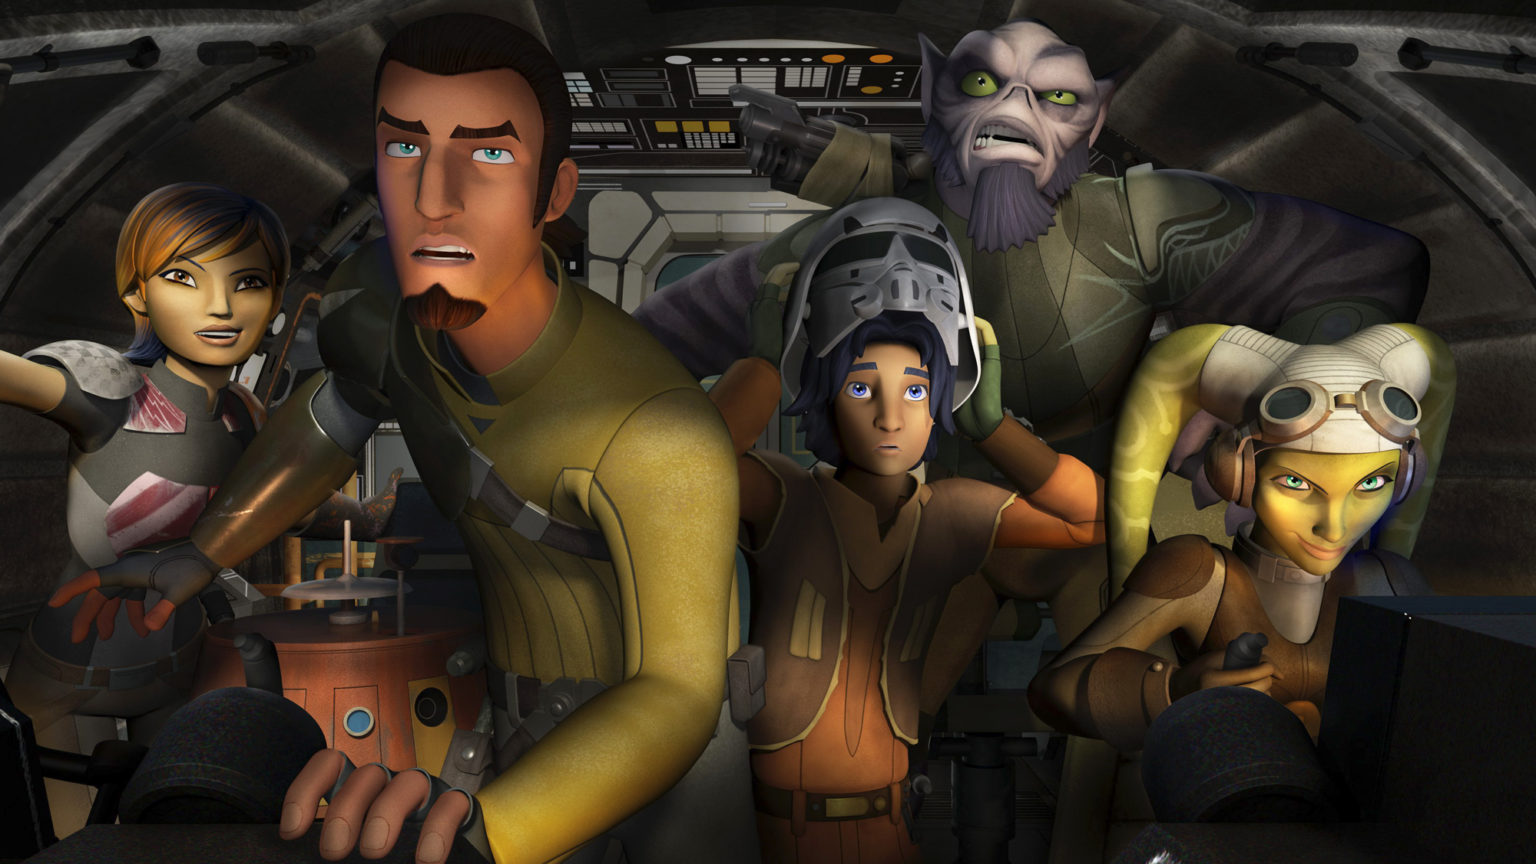 star wars rebels spark of rebellion premieres friday october 3 on